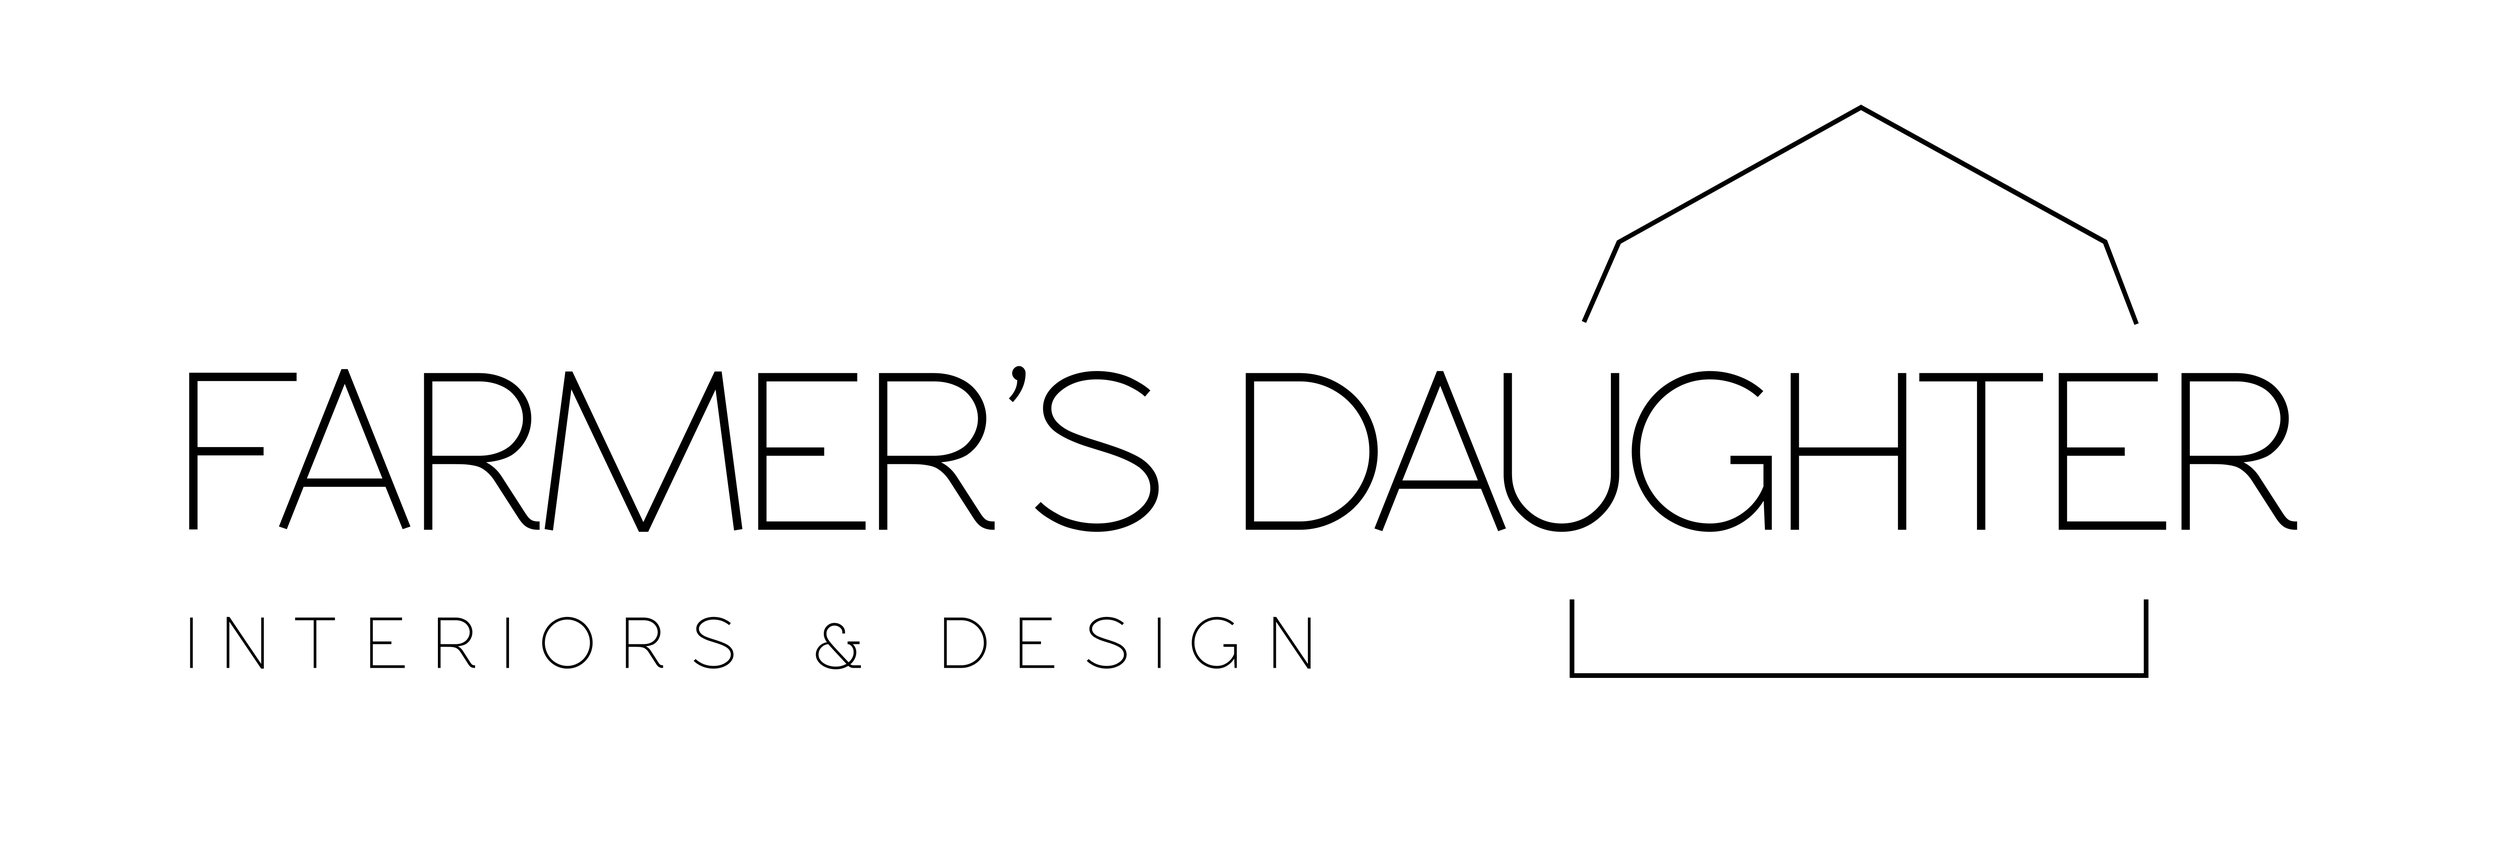 The logo was designed by a great friend of mine, who is now in the process of launching her own creative business.